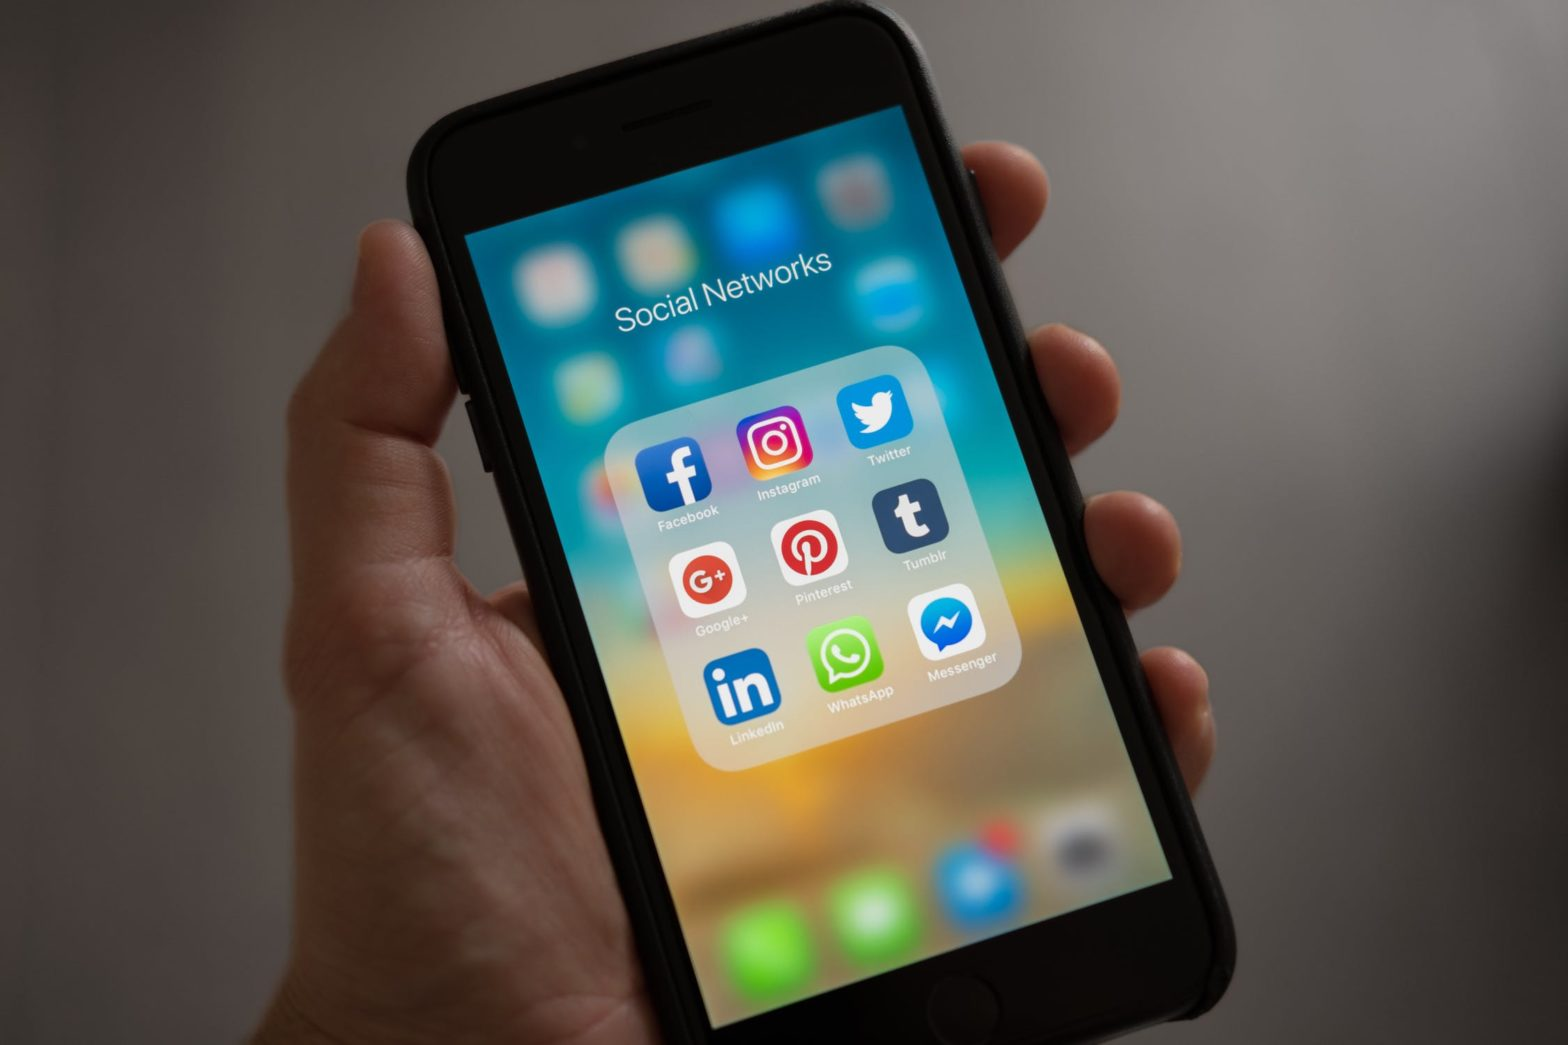 Six Ways to Use Social Media For Business